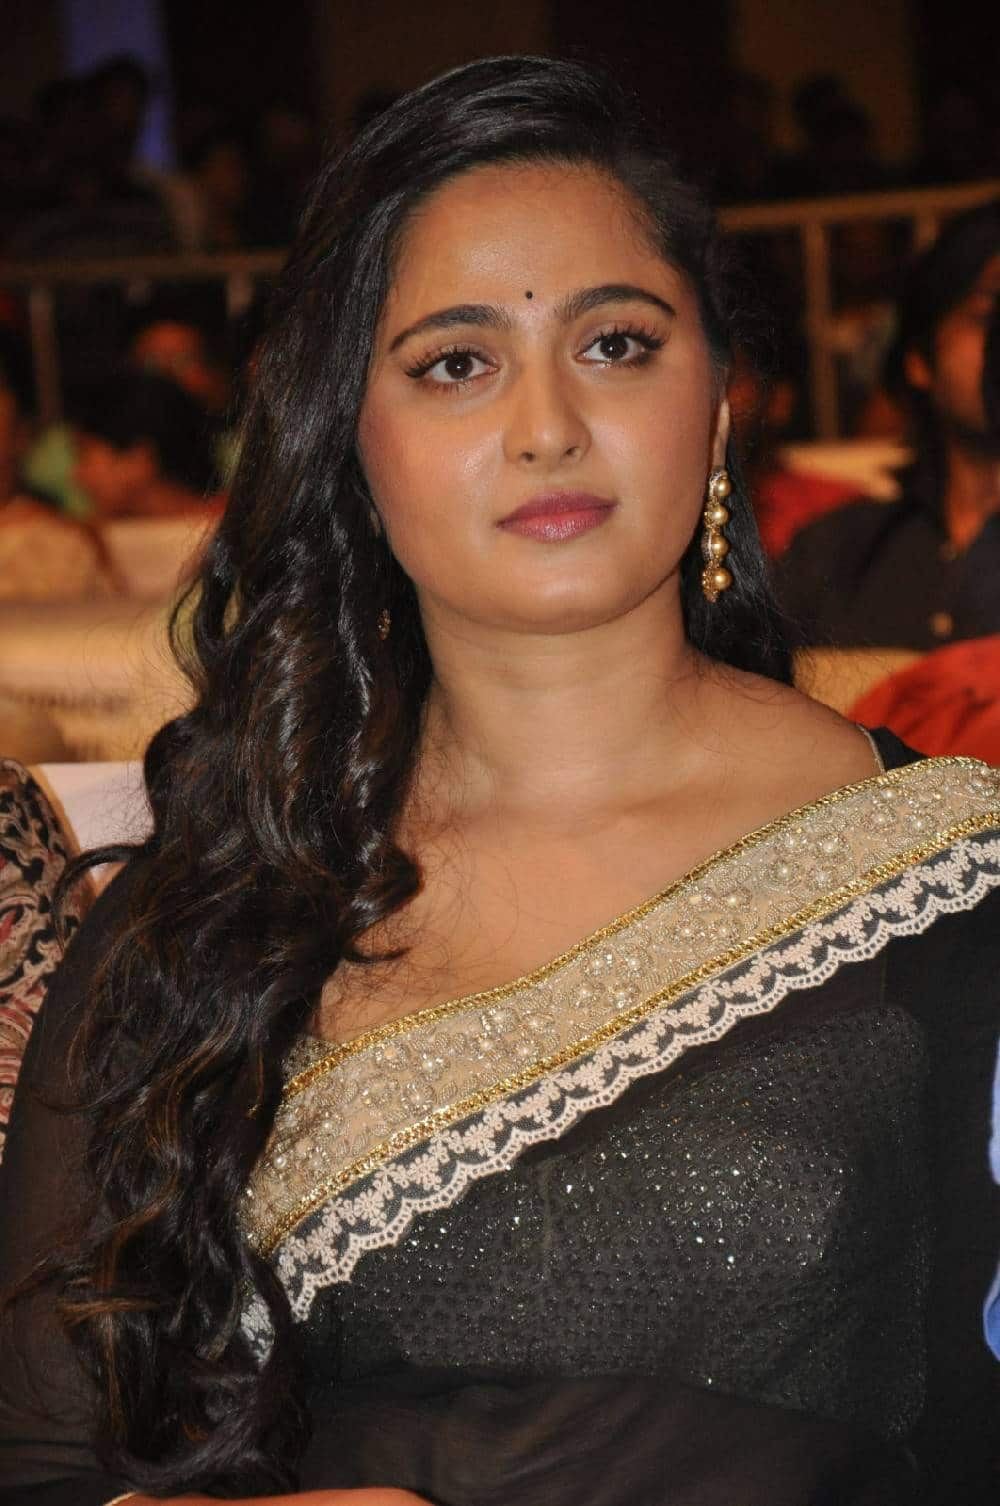 Anushka Shetty S Weight Issue A Cause Of Concern For